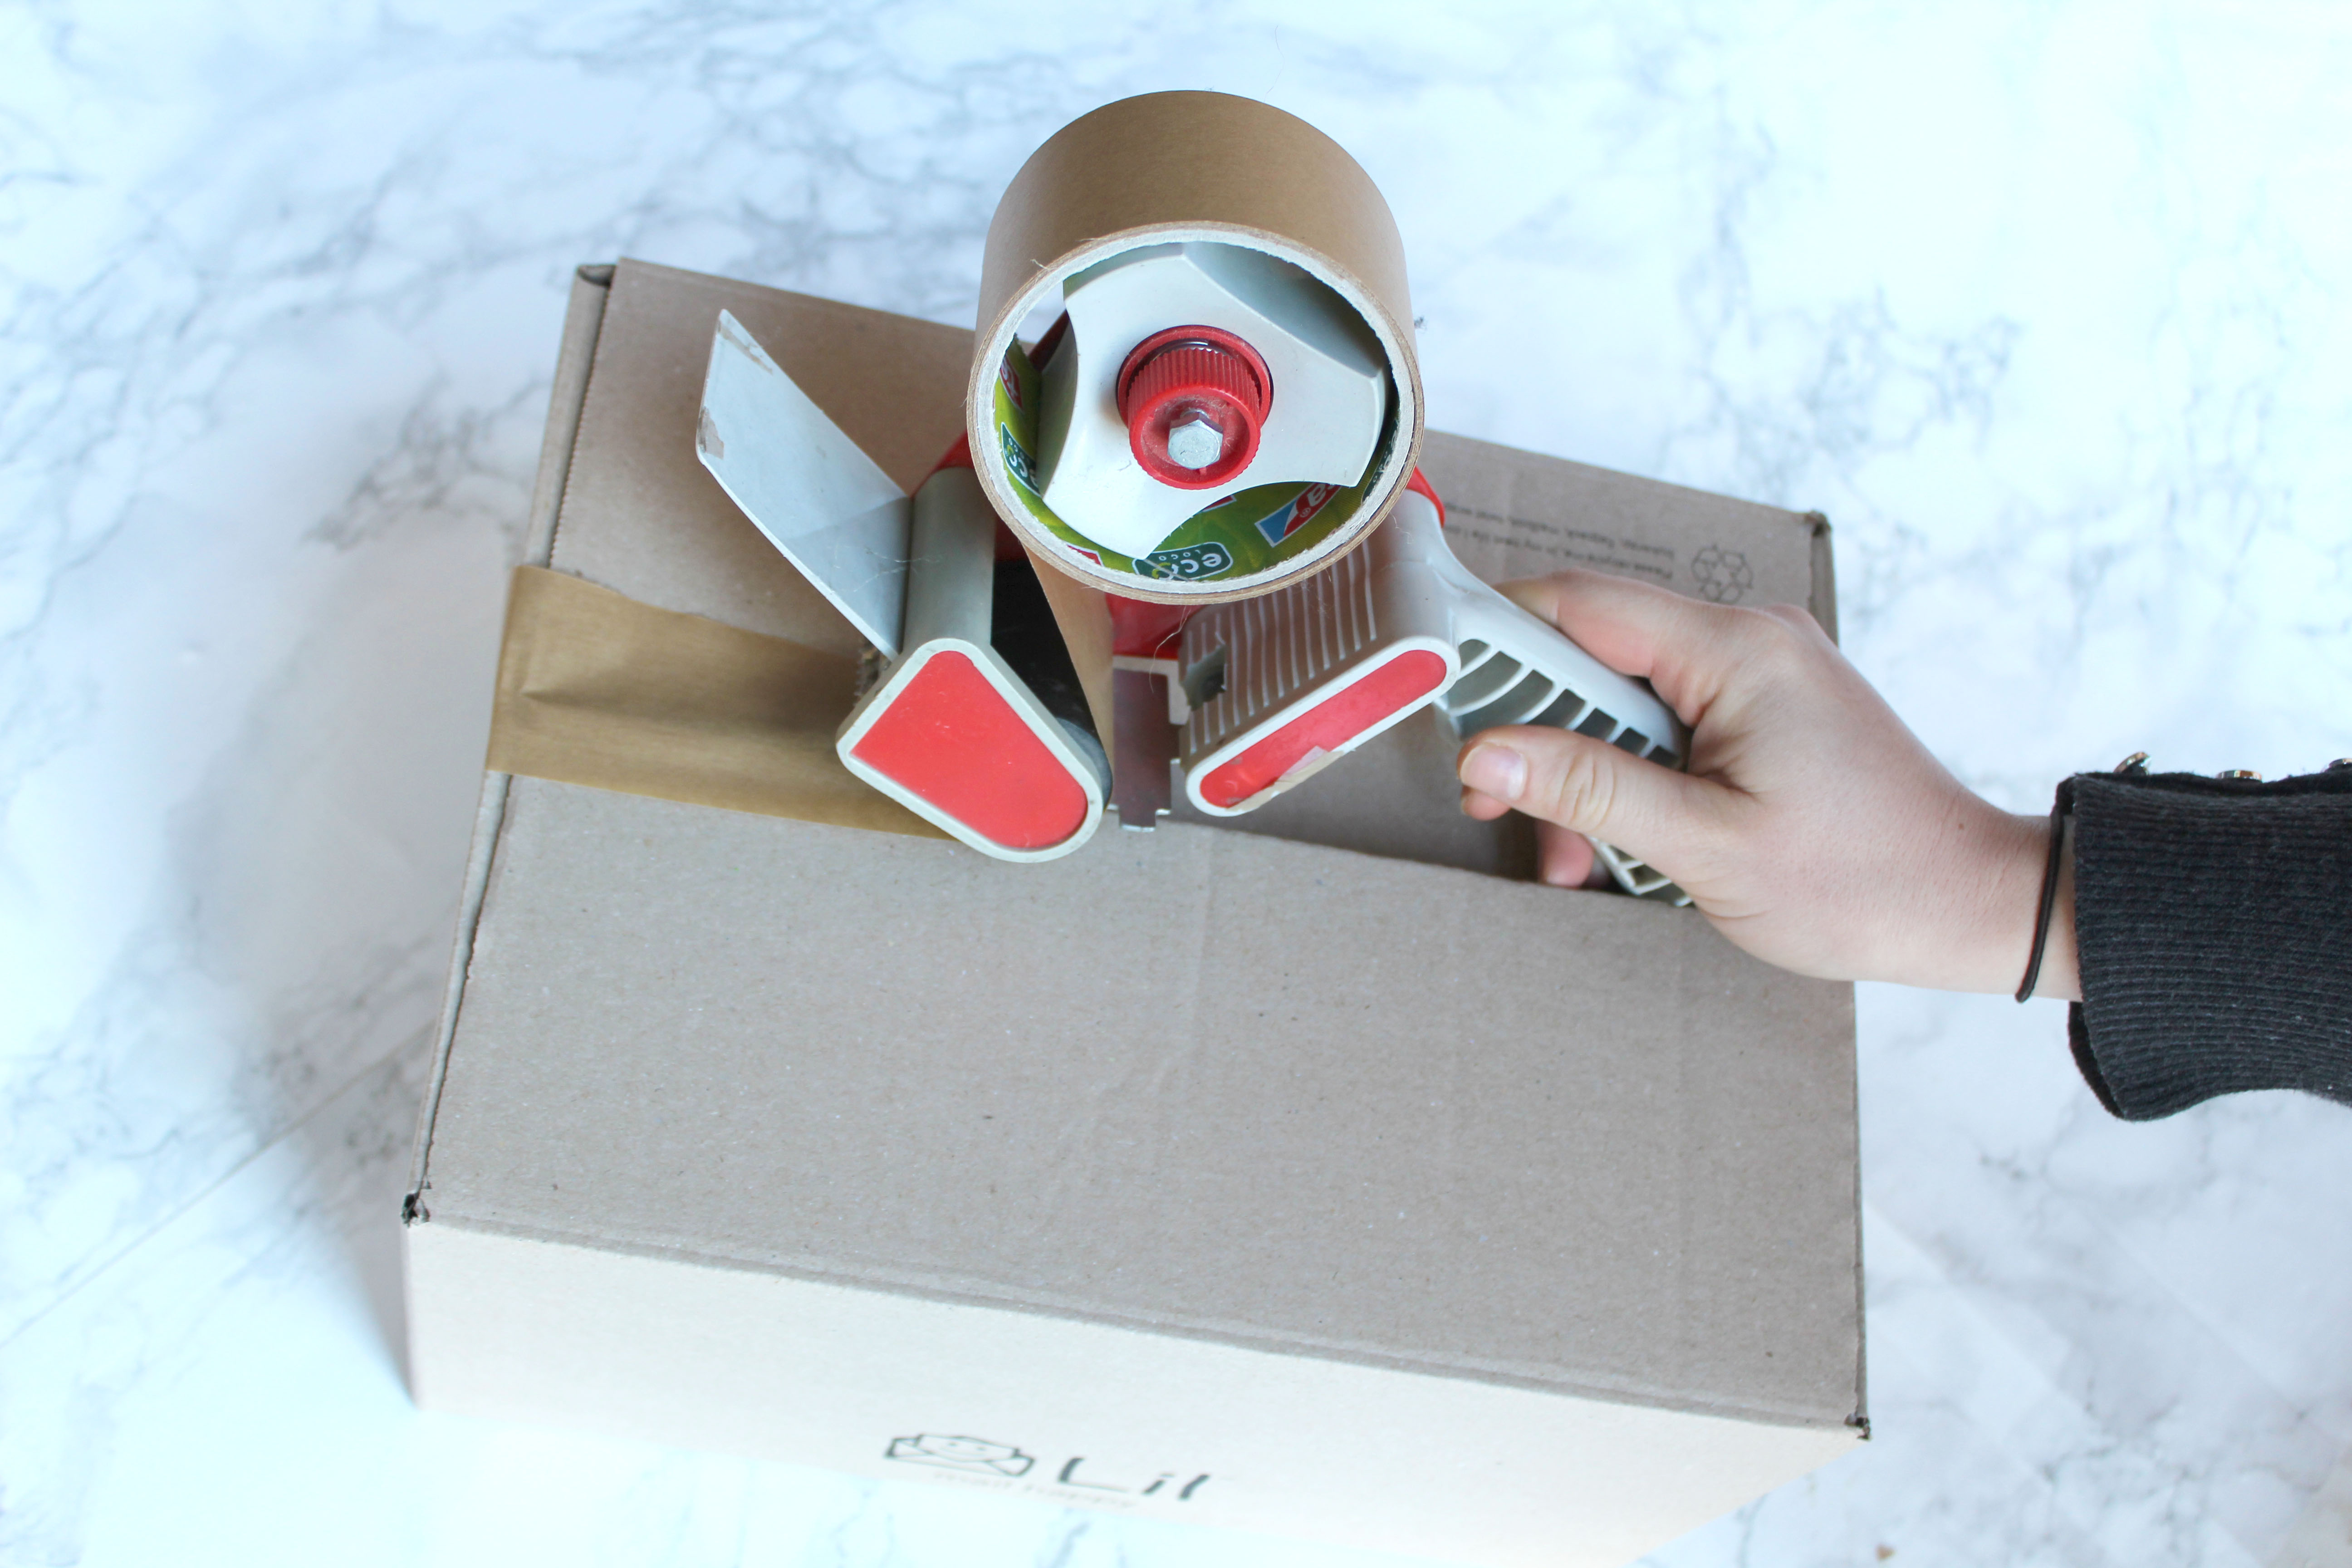 Tesa Eco-friendly packaging parcel tape for environmentally friendly packaging